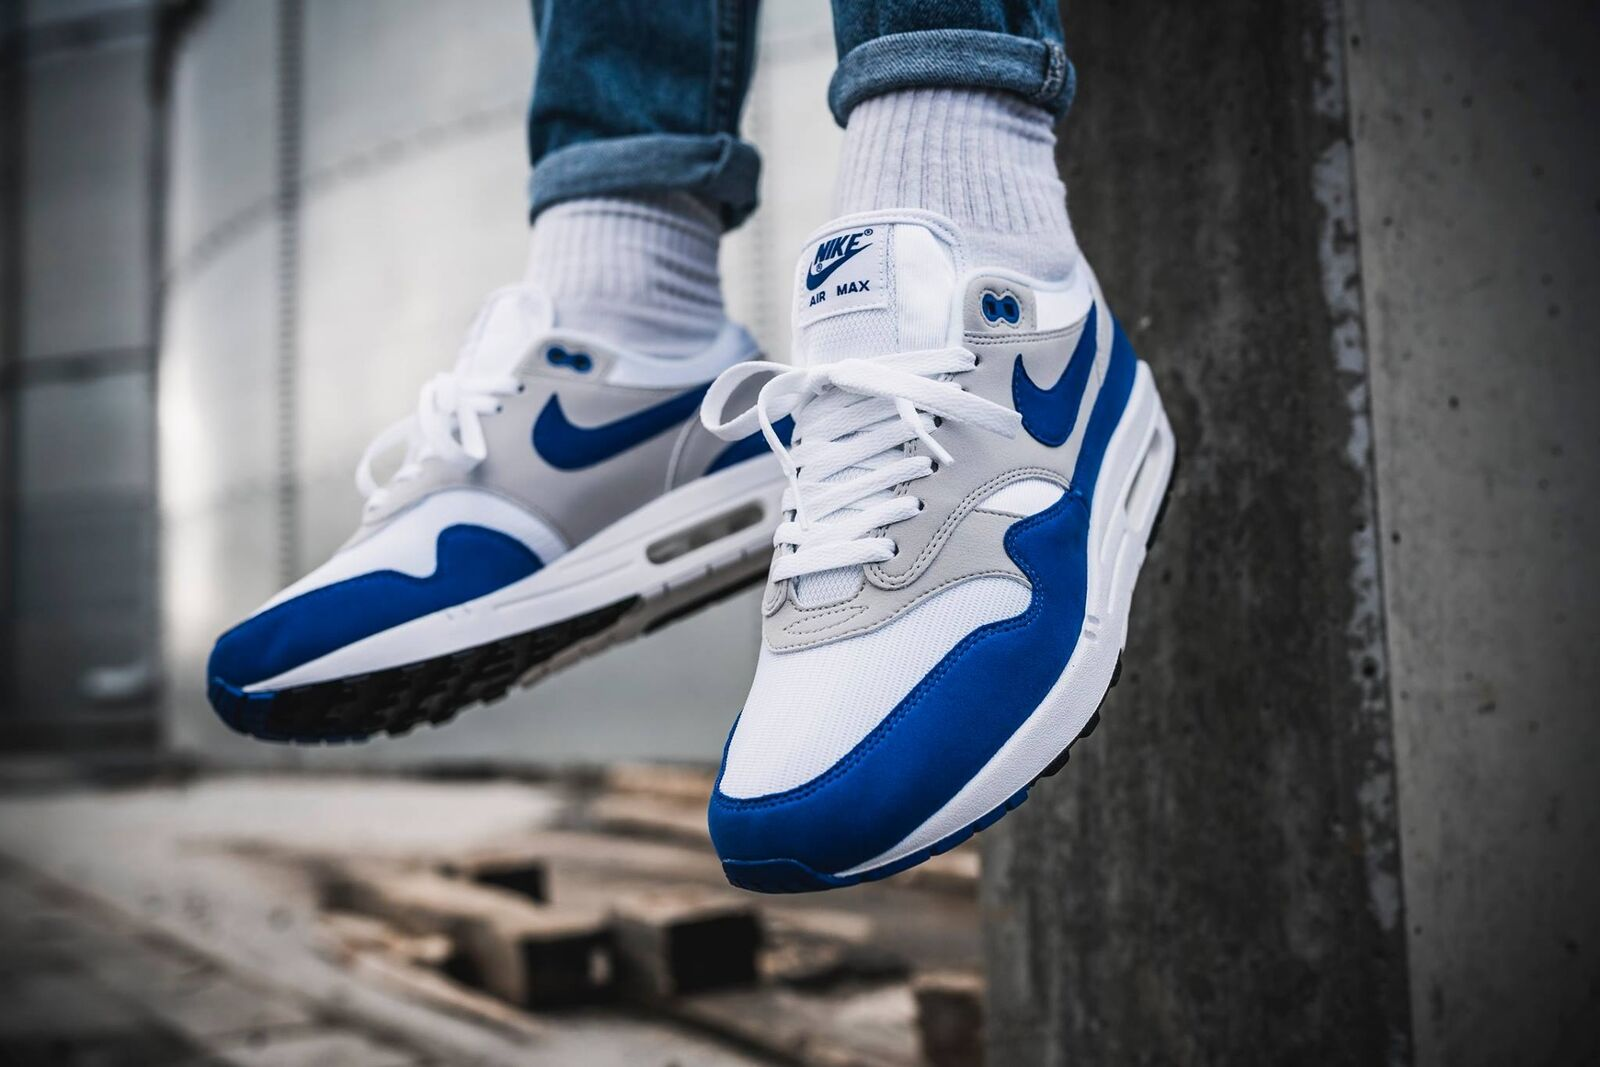 Nike Air Max 1 OG Bleu anniversary 2018 6.5 7,5 41 hoa elephant master pinnacle